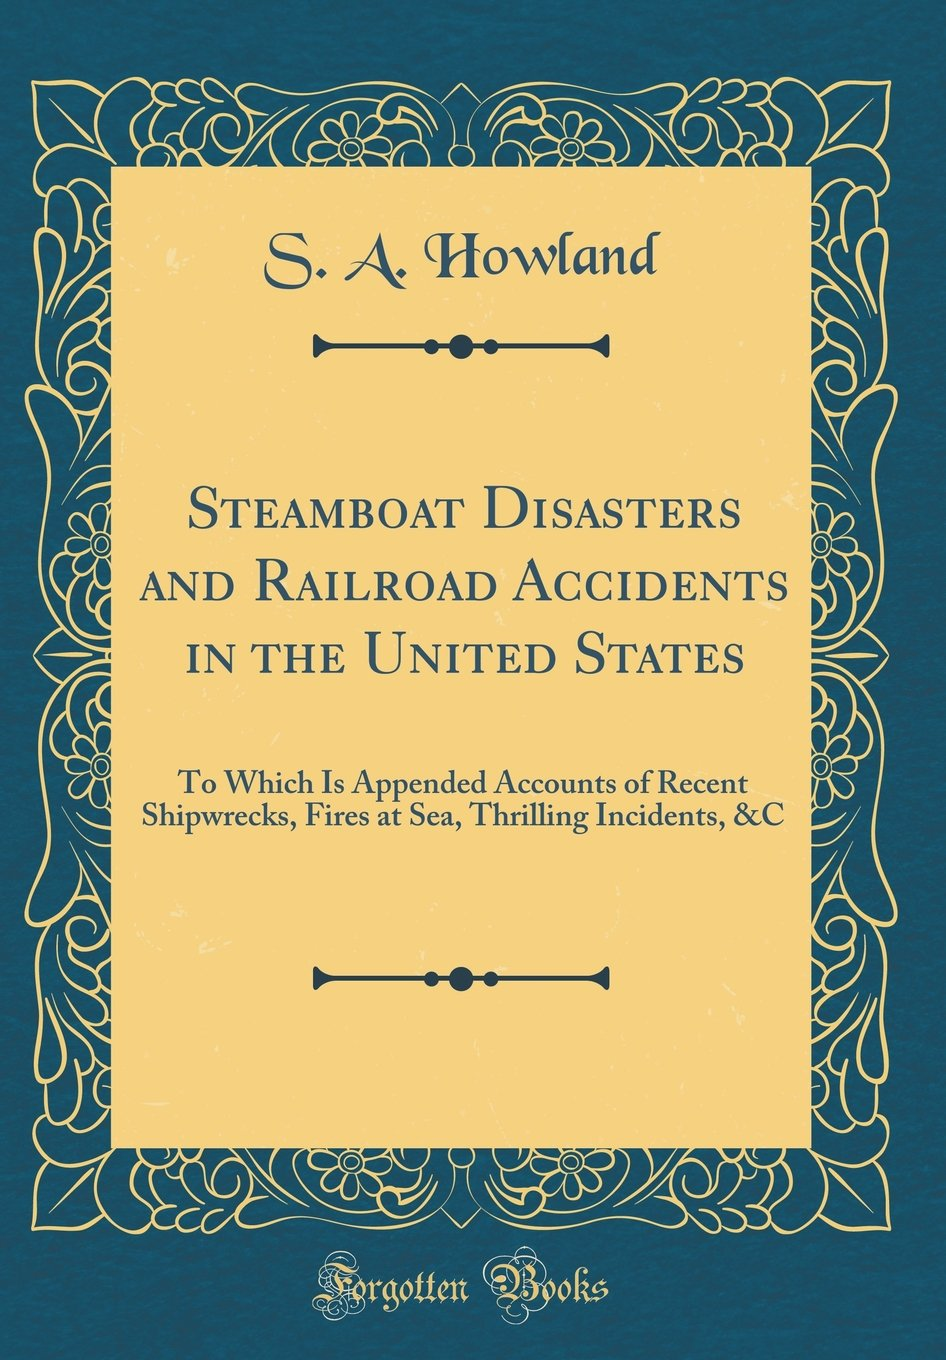 Steamboat Disasters and Railroad Accidents in the United States: To Which Is Appended Accounts of Recent Shipwrecks, Fires at Sea, Thrilling Incidents, &C (Classic Reprint) ebook